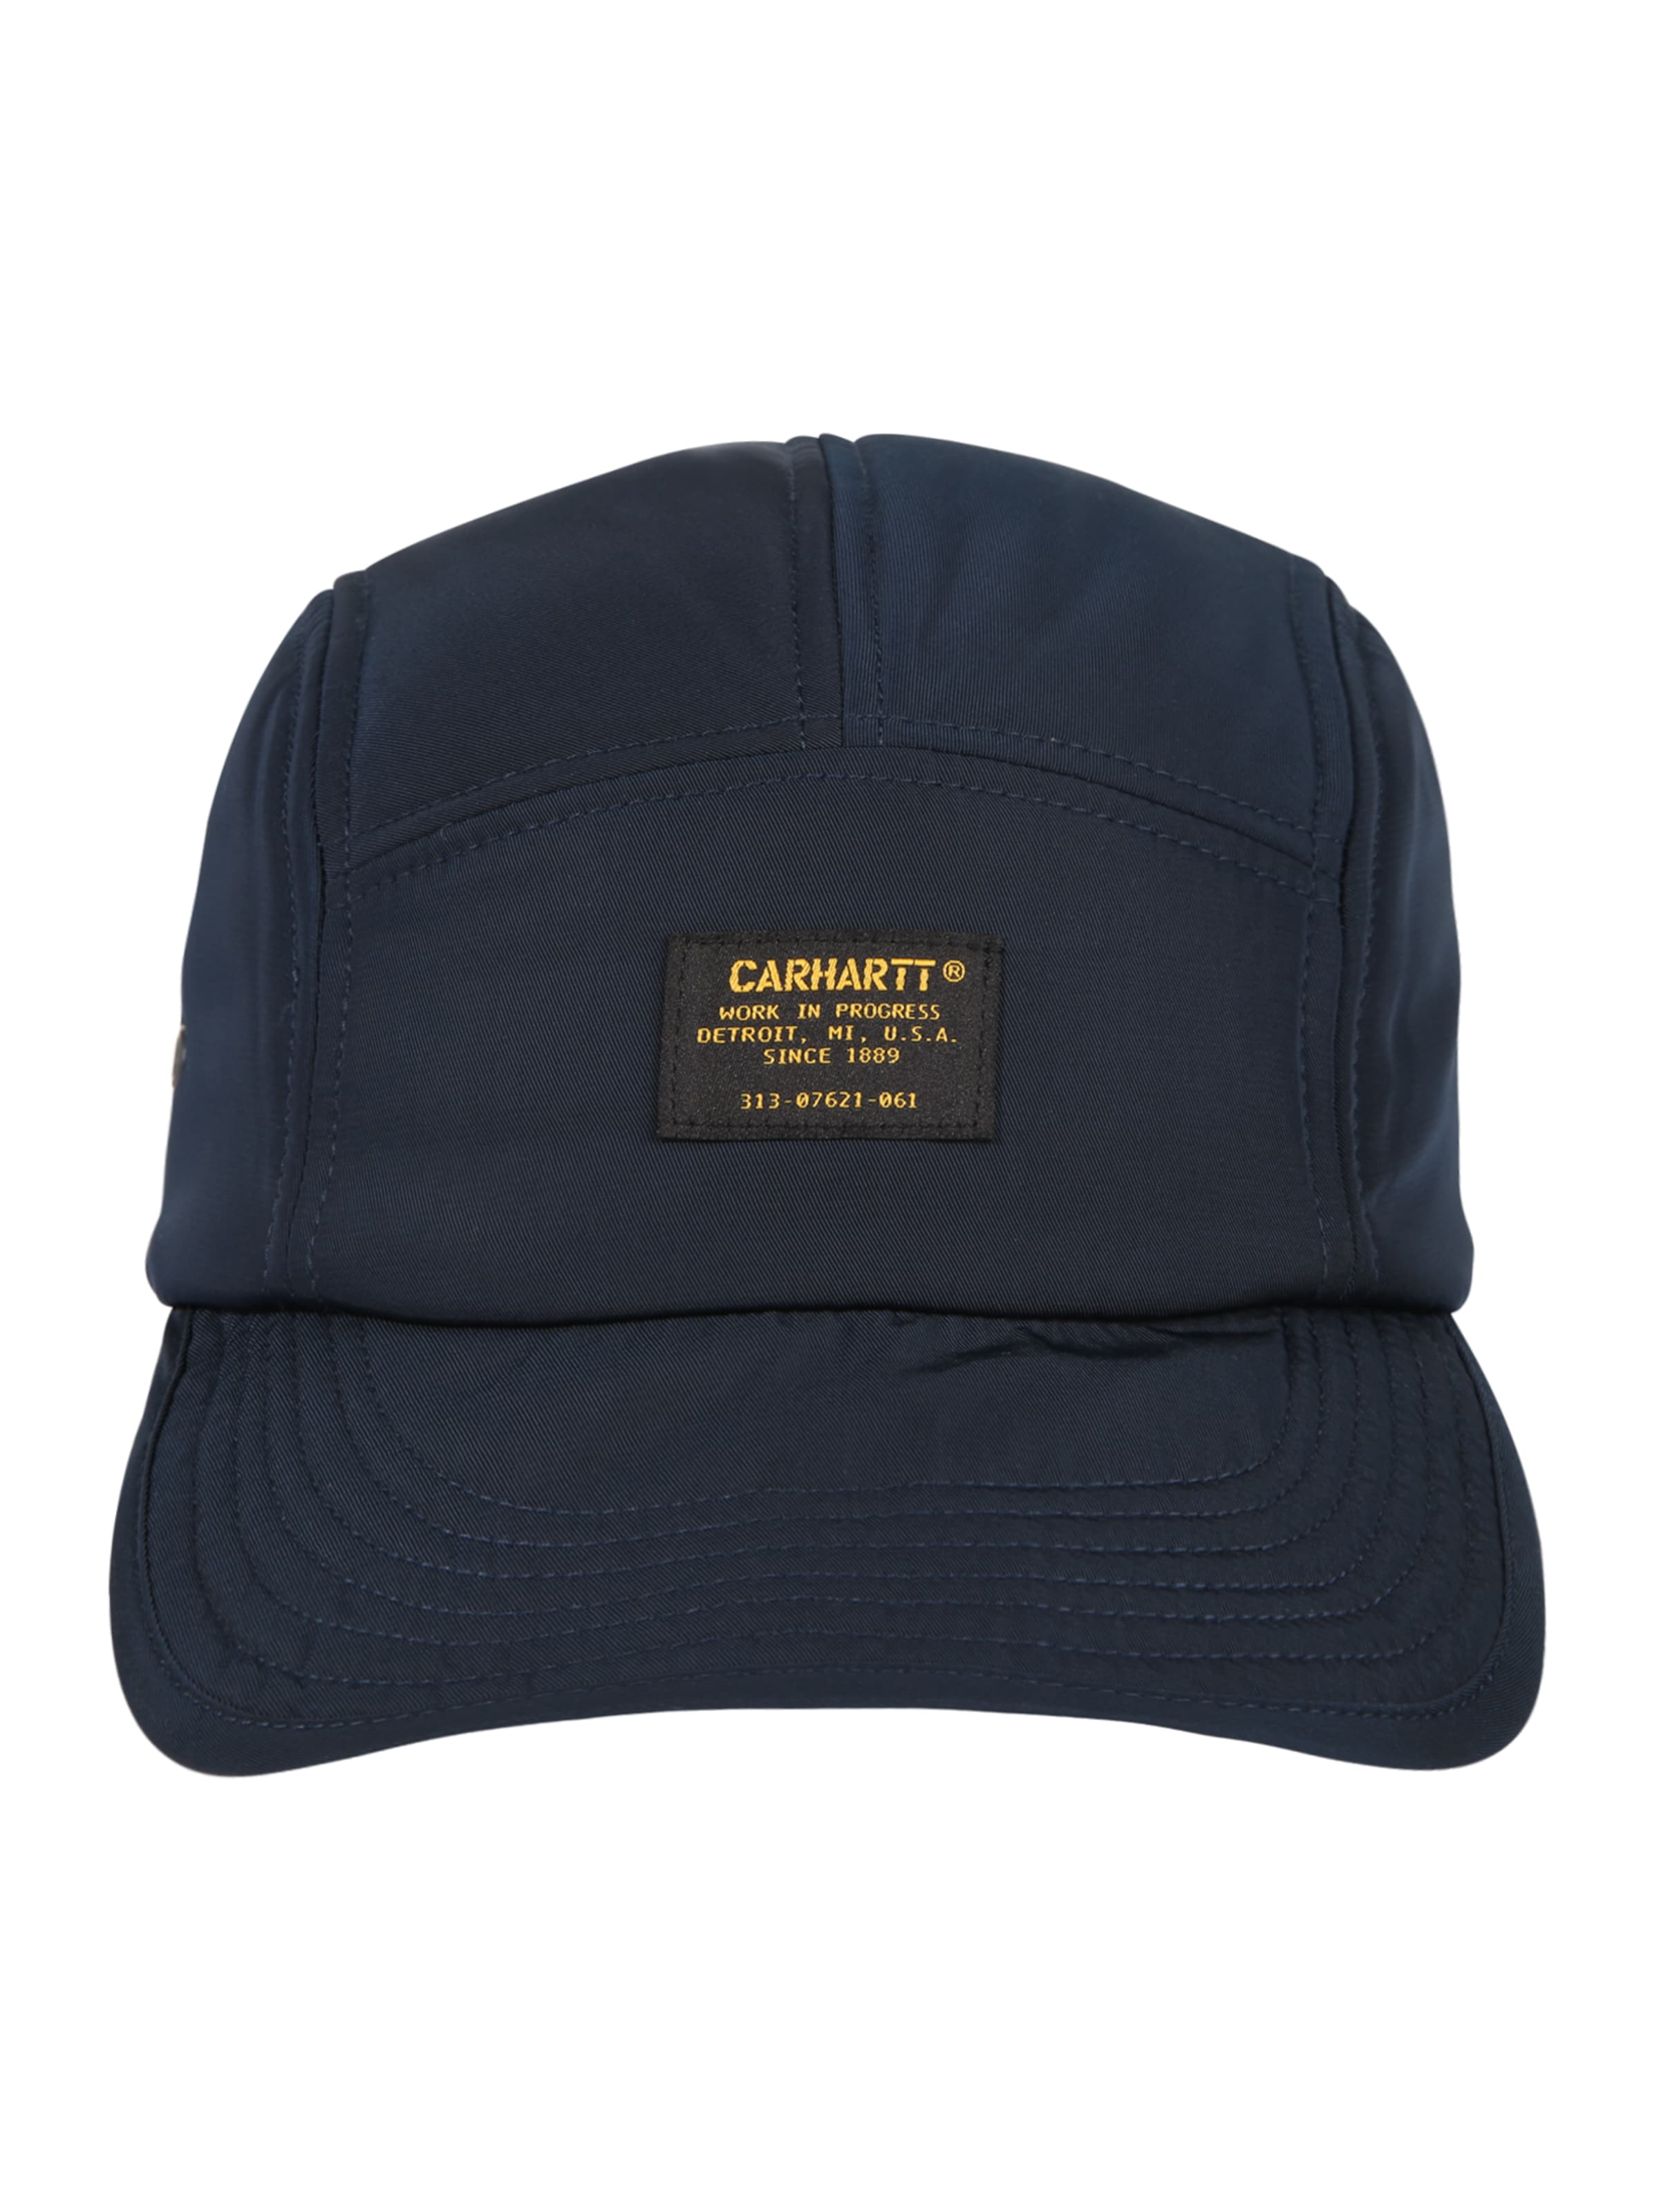 Navy Pet In Wip Navy Pet Wip Carhartt Carhartt In Carhartt RcAqjL345